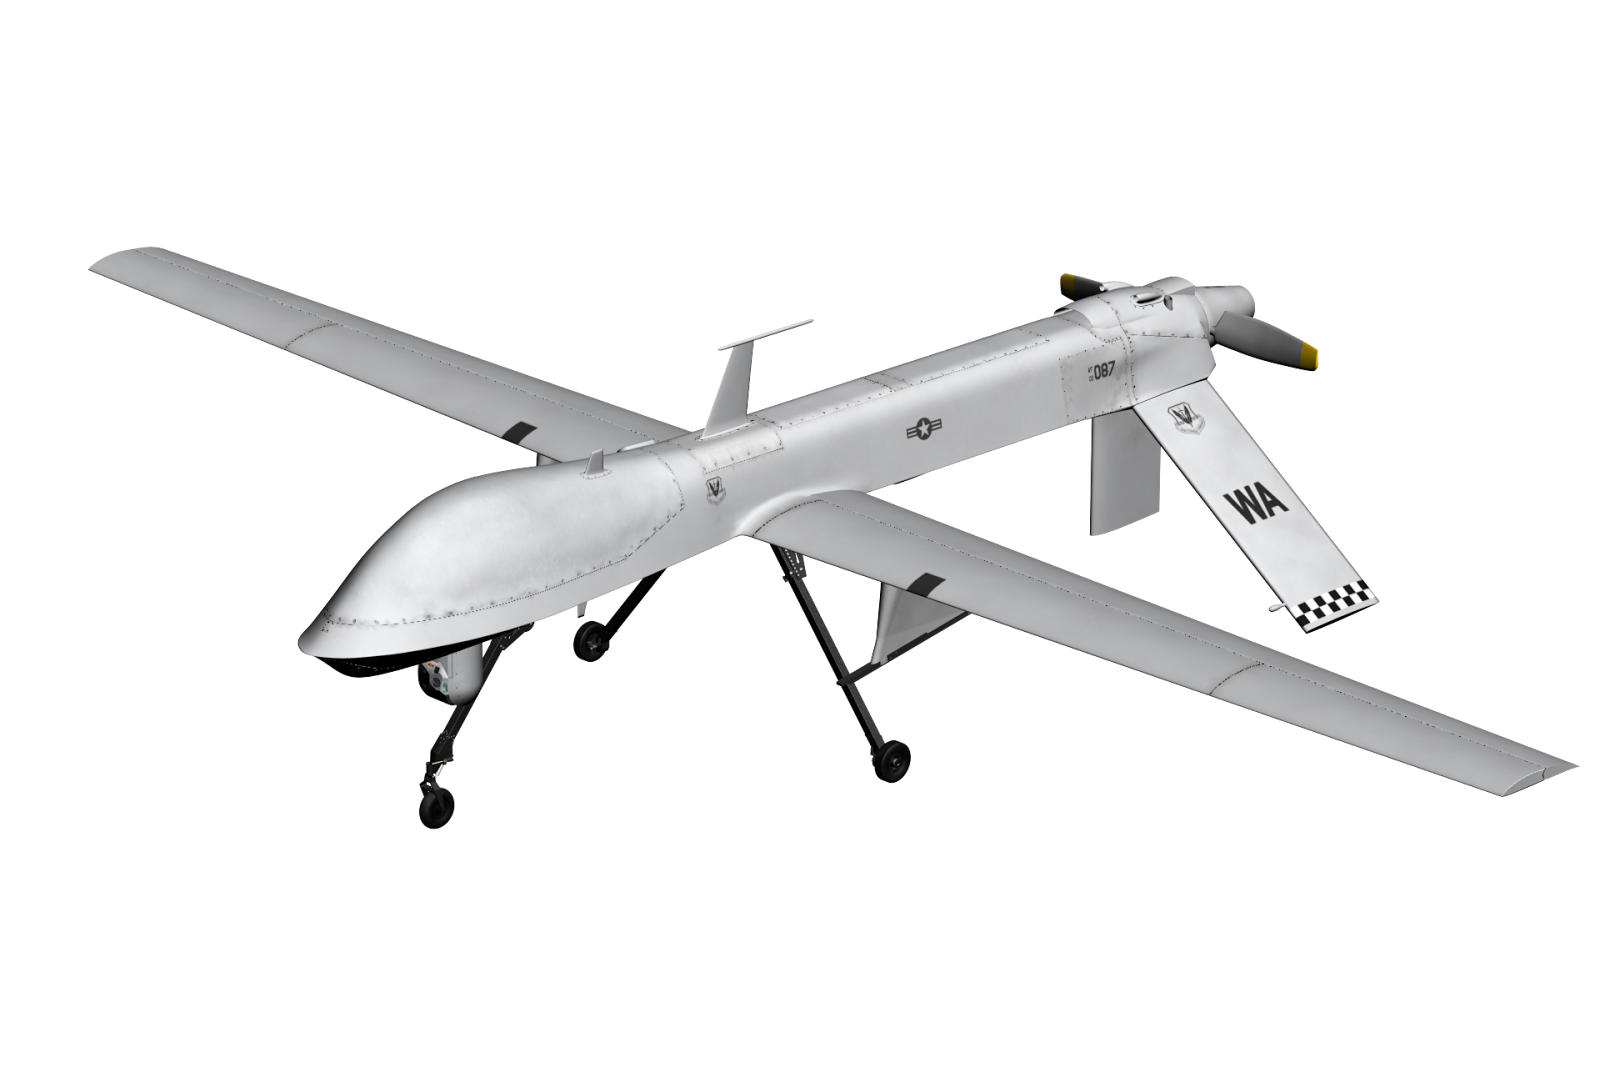 army uav planes with 2016 06 01 Archive on C 23 furthermore Vikrant Class Indian Indigenous additionally Boeing Phantom Ray Unmanned Aircraft moreover Watch together with Military Drone Mothership May Get Giant Claw.